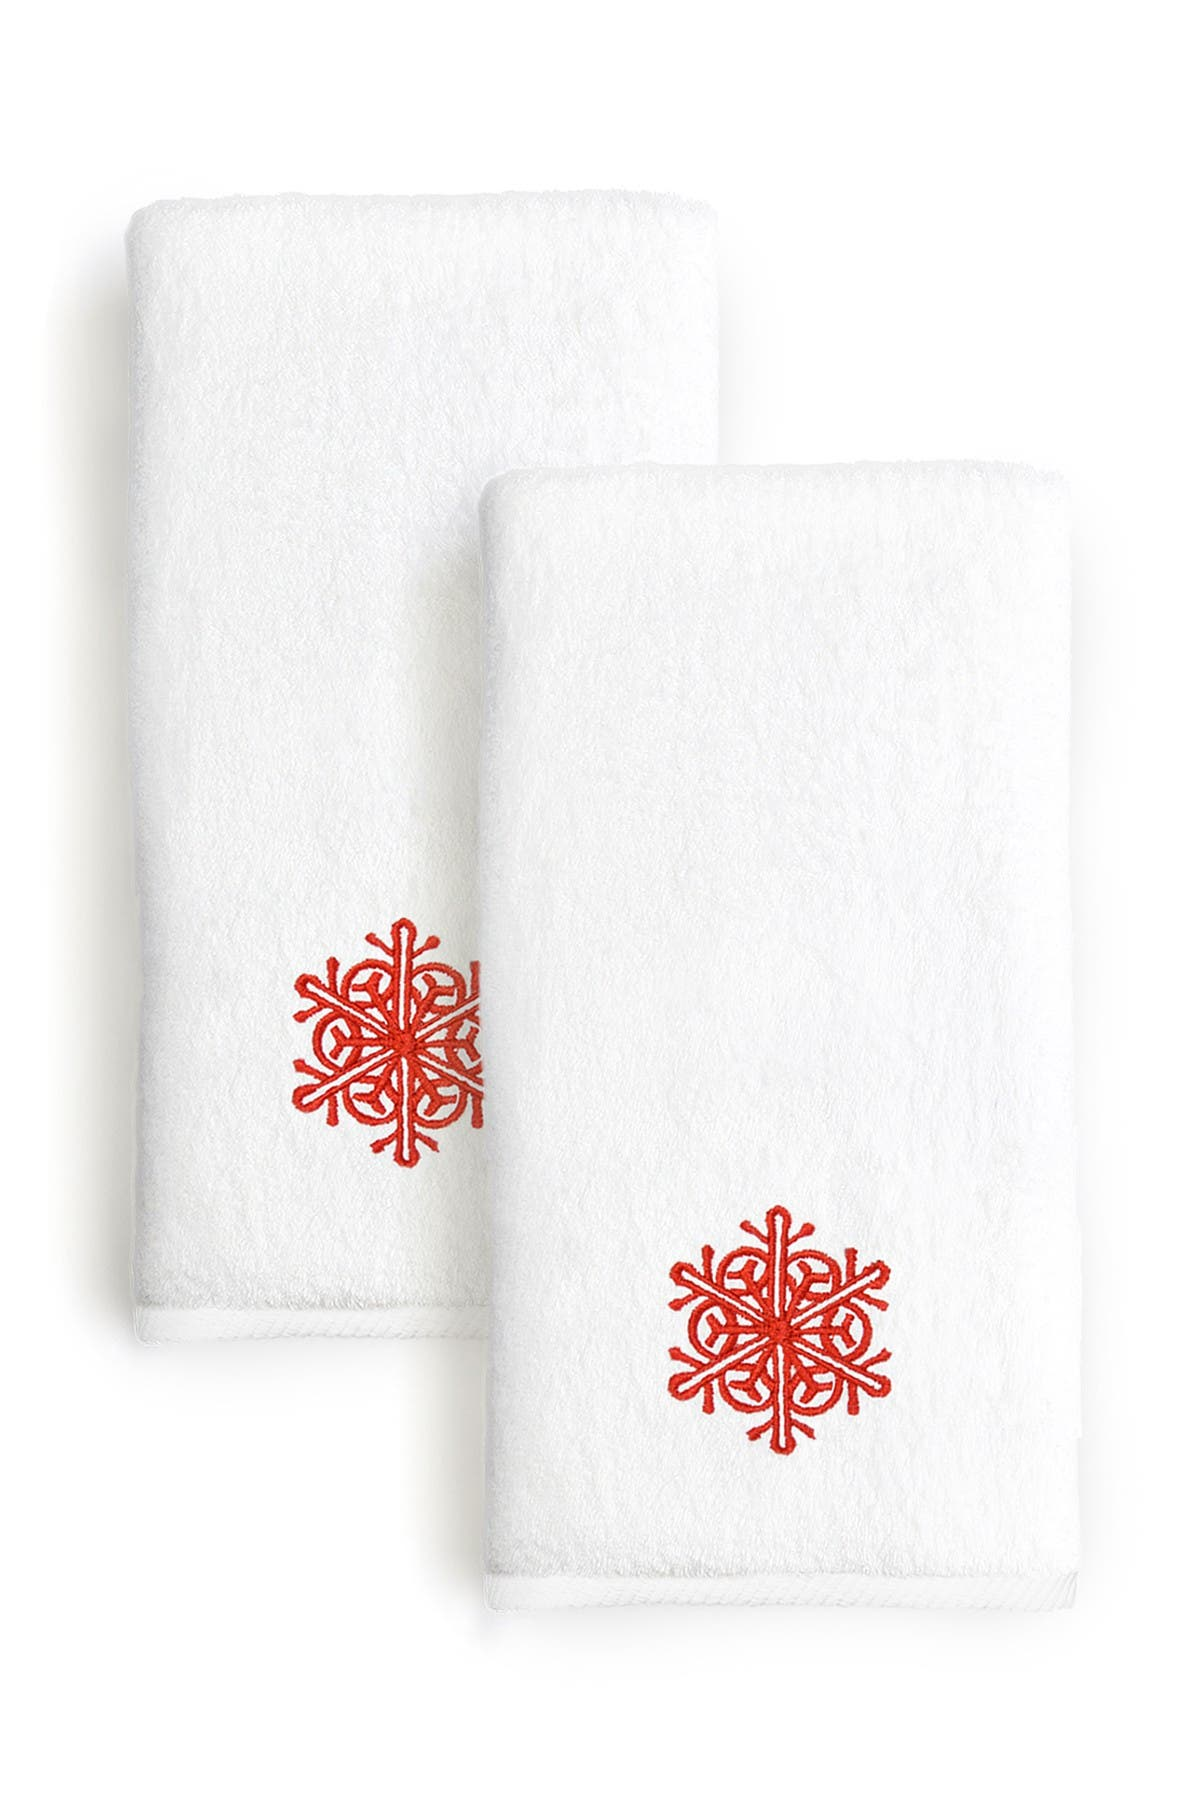 Image of LINUM TOWELS Red Snow Flake Embroidered Hand Towels - Set of 2